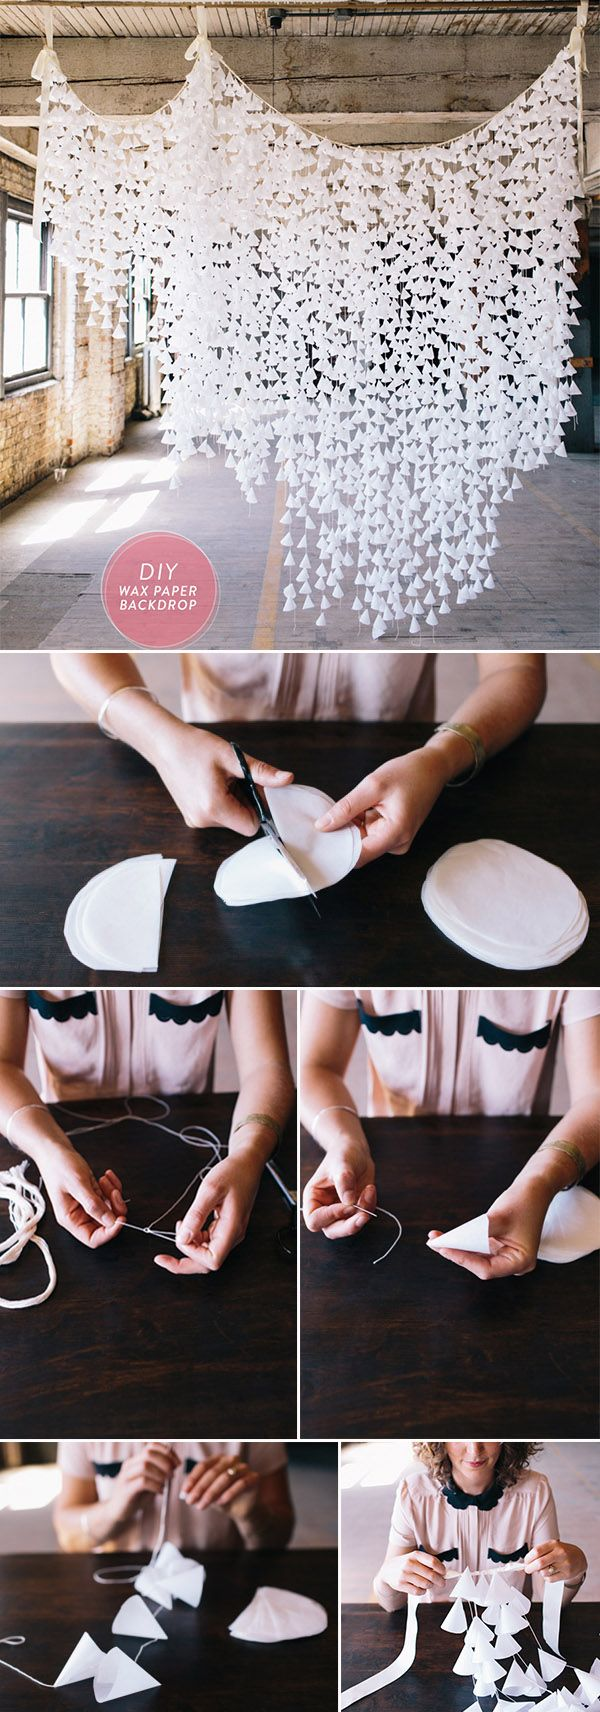 10 Wedding Ideas On A Budget